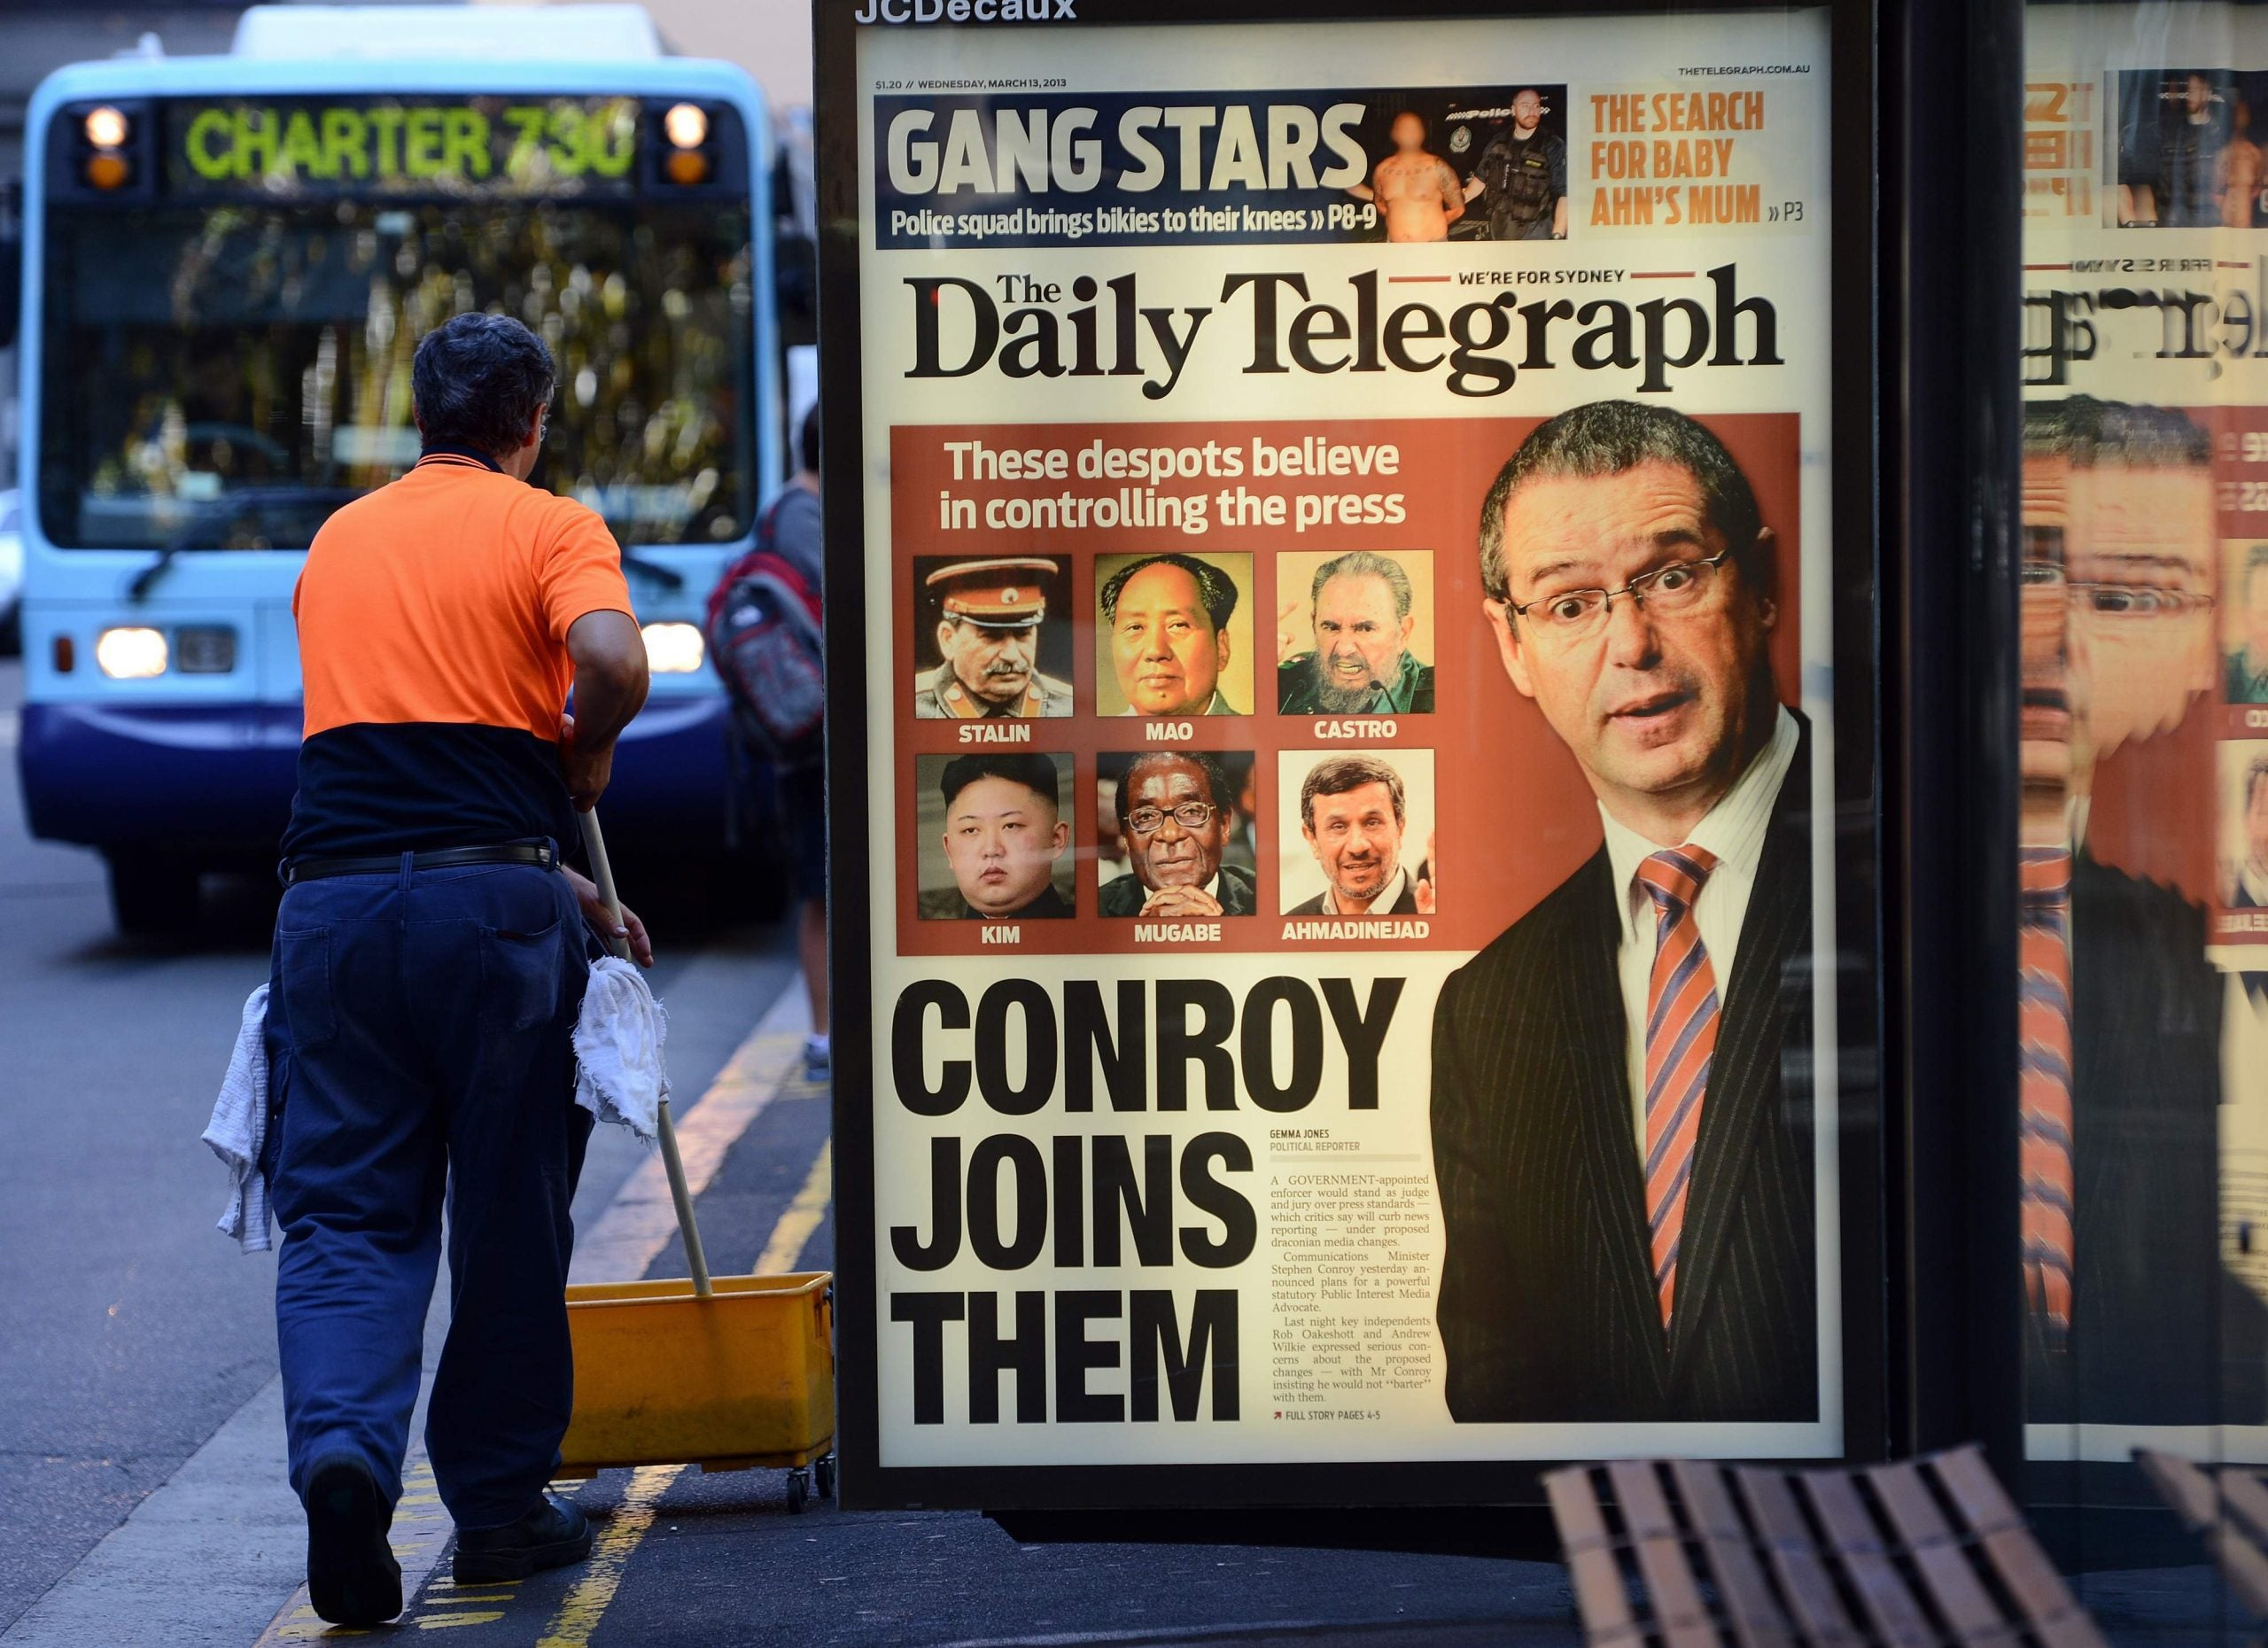 Hold the front page! We need free media not an Order of Mates